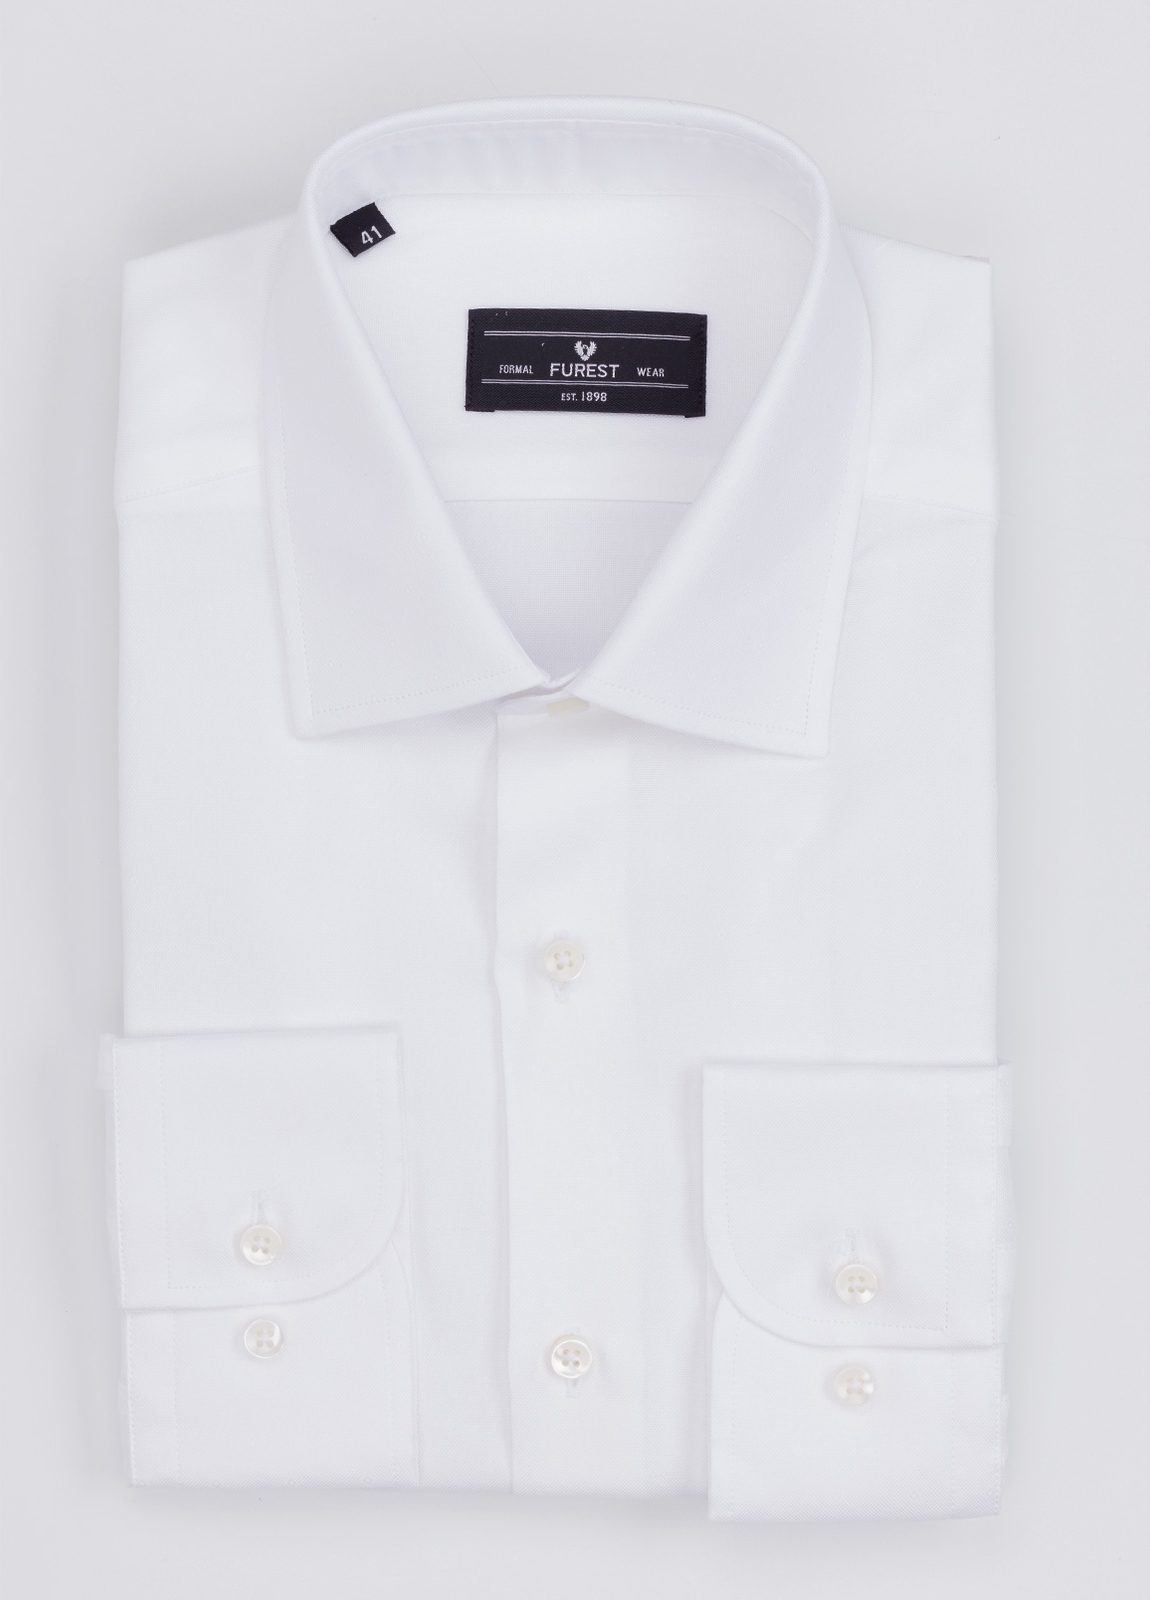 Camisa Formal Wear SLIM FIT cuello italiano modelo ROMA microdibujo color blanco. 100% Algodón.